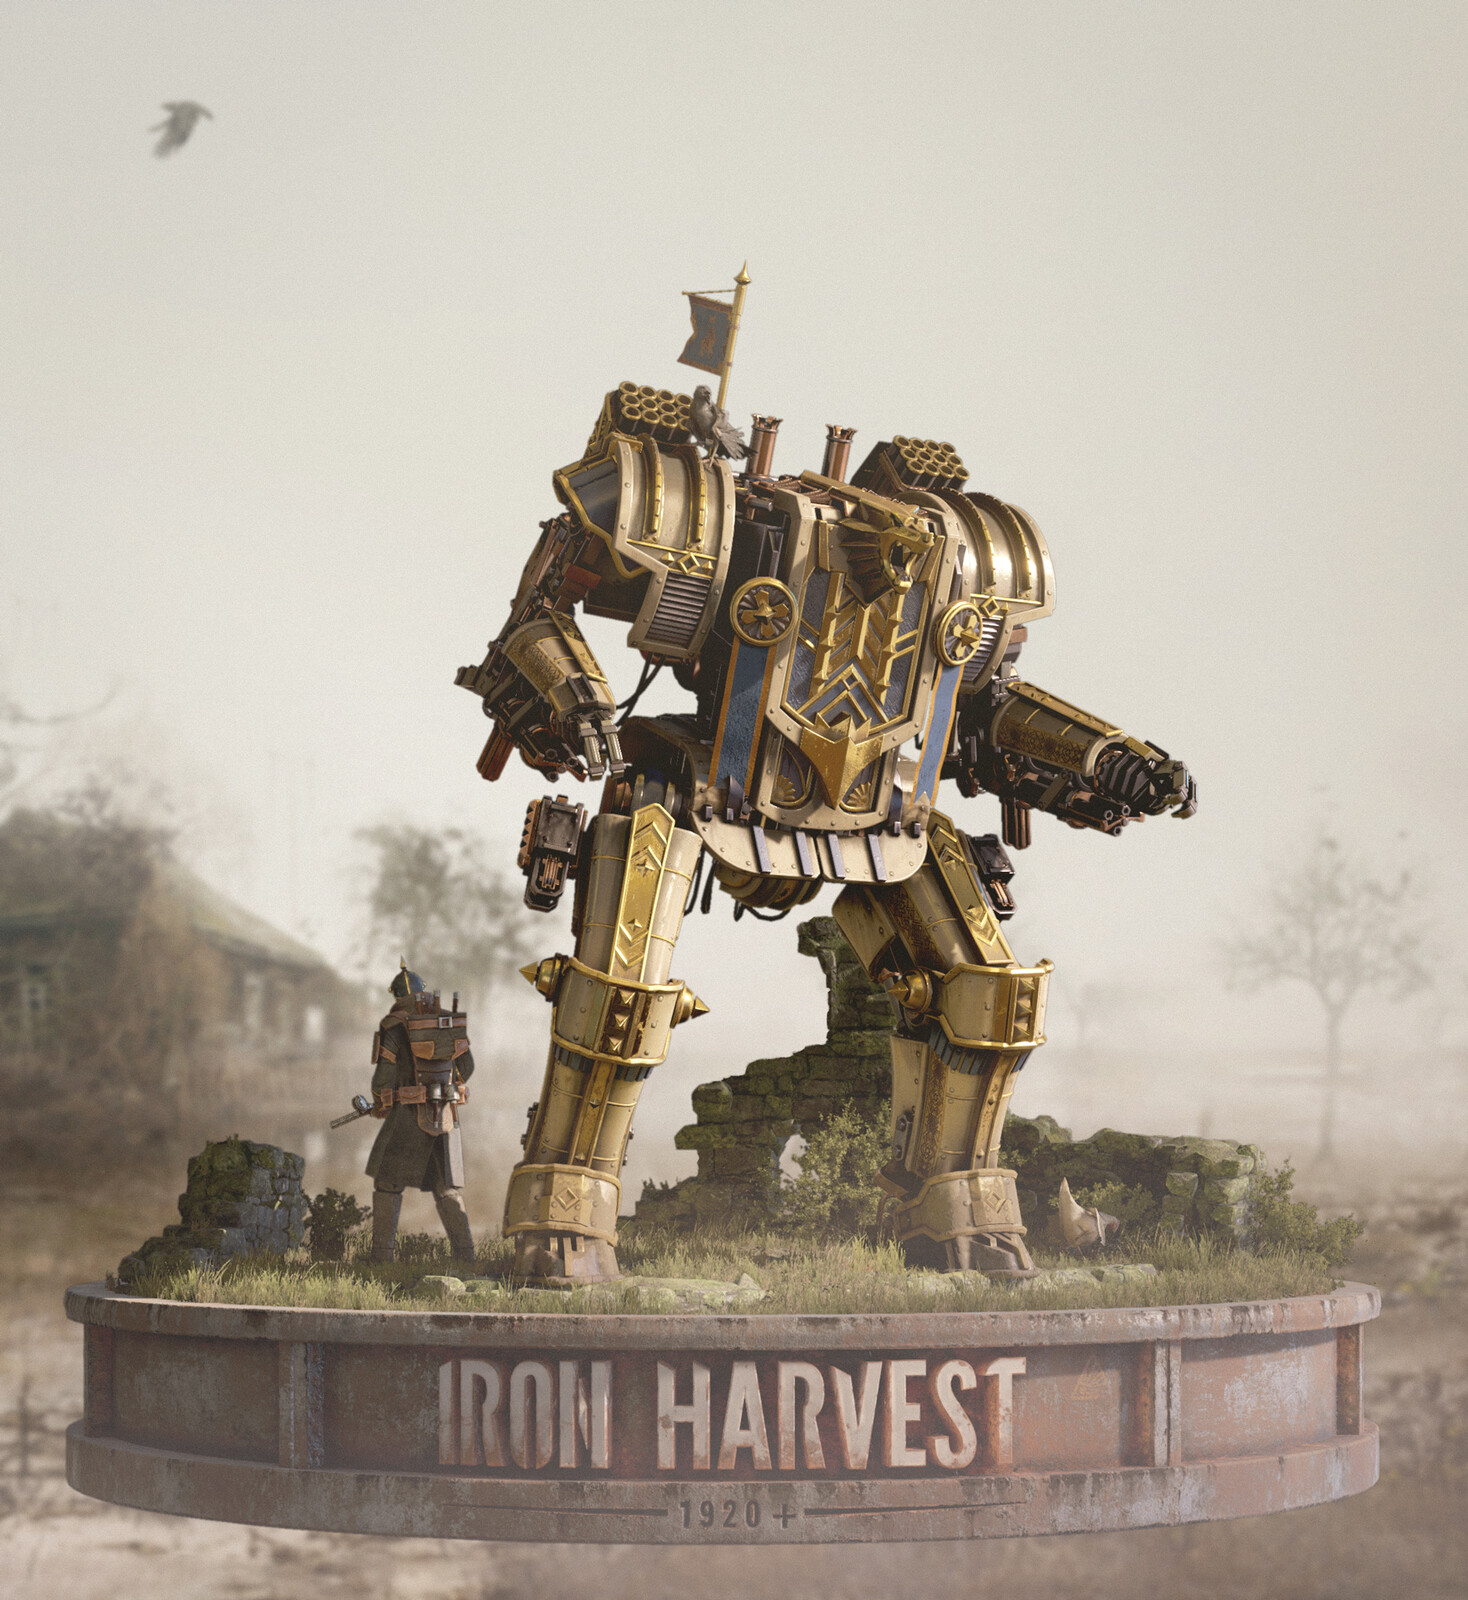 Iron Harvest - Internship